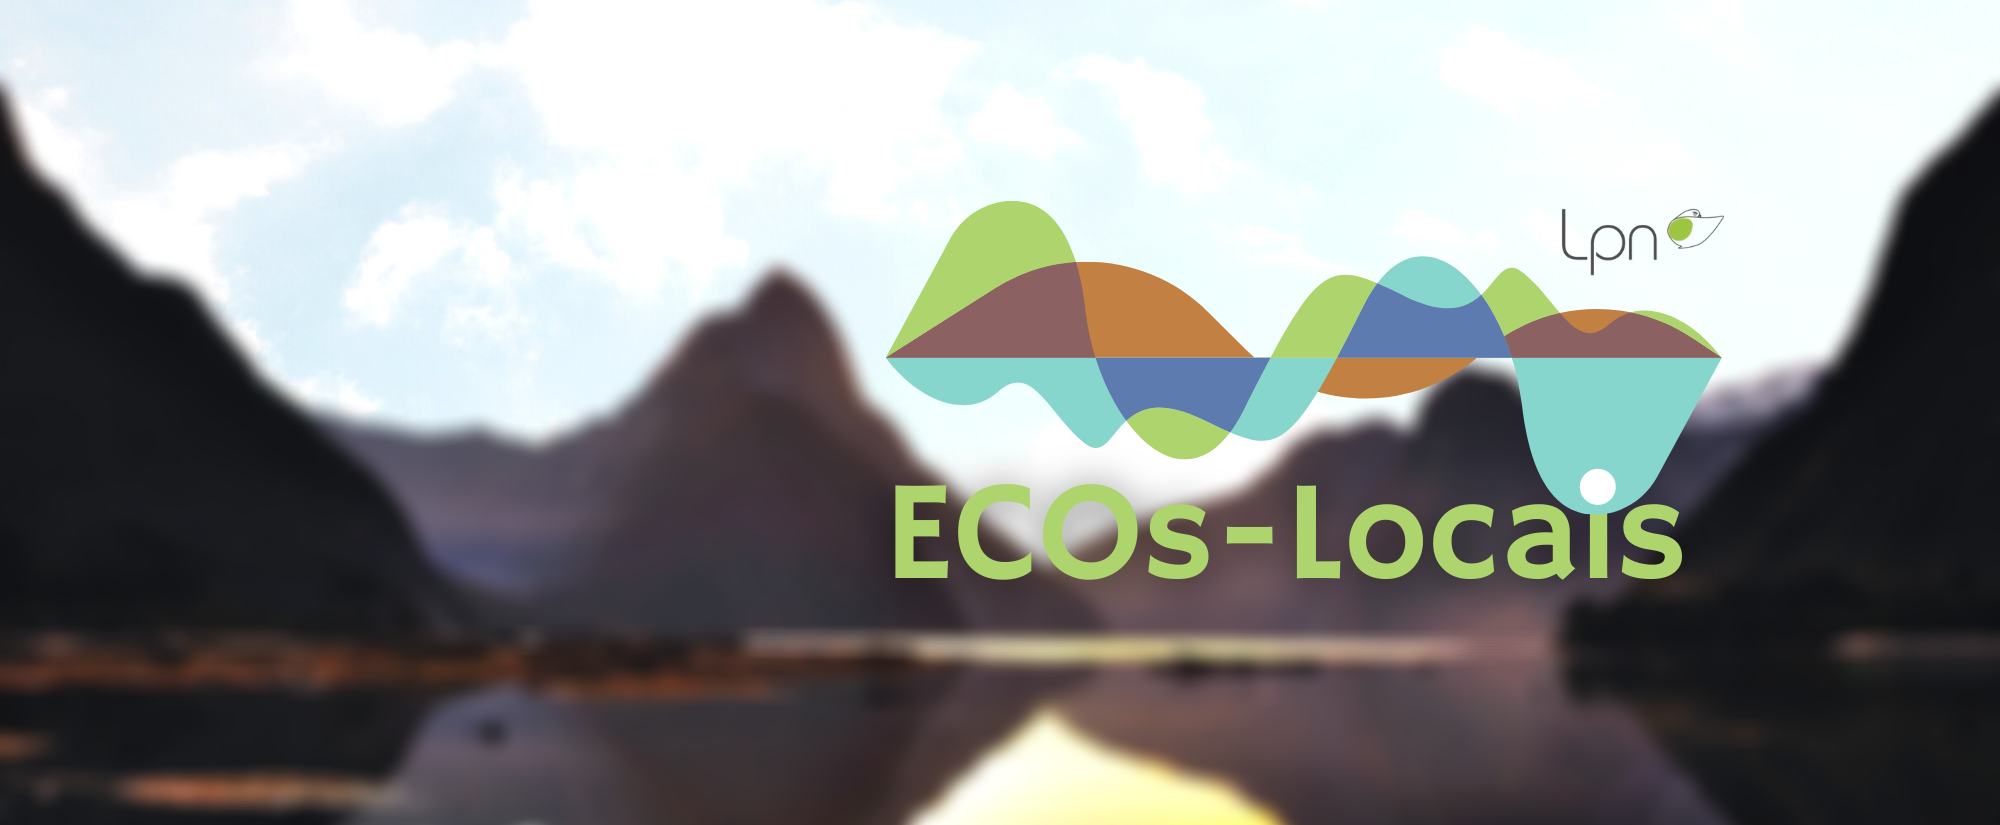 Relaunching the Ecos-locais project